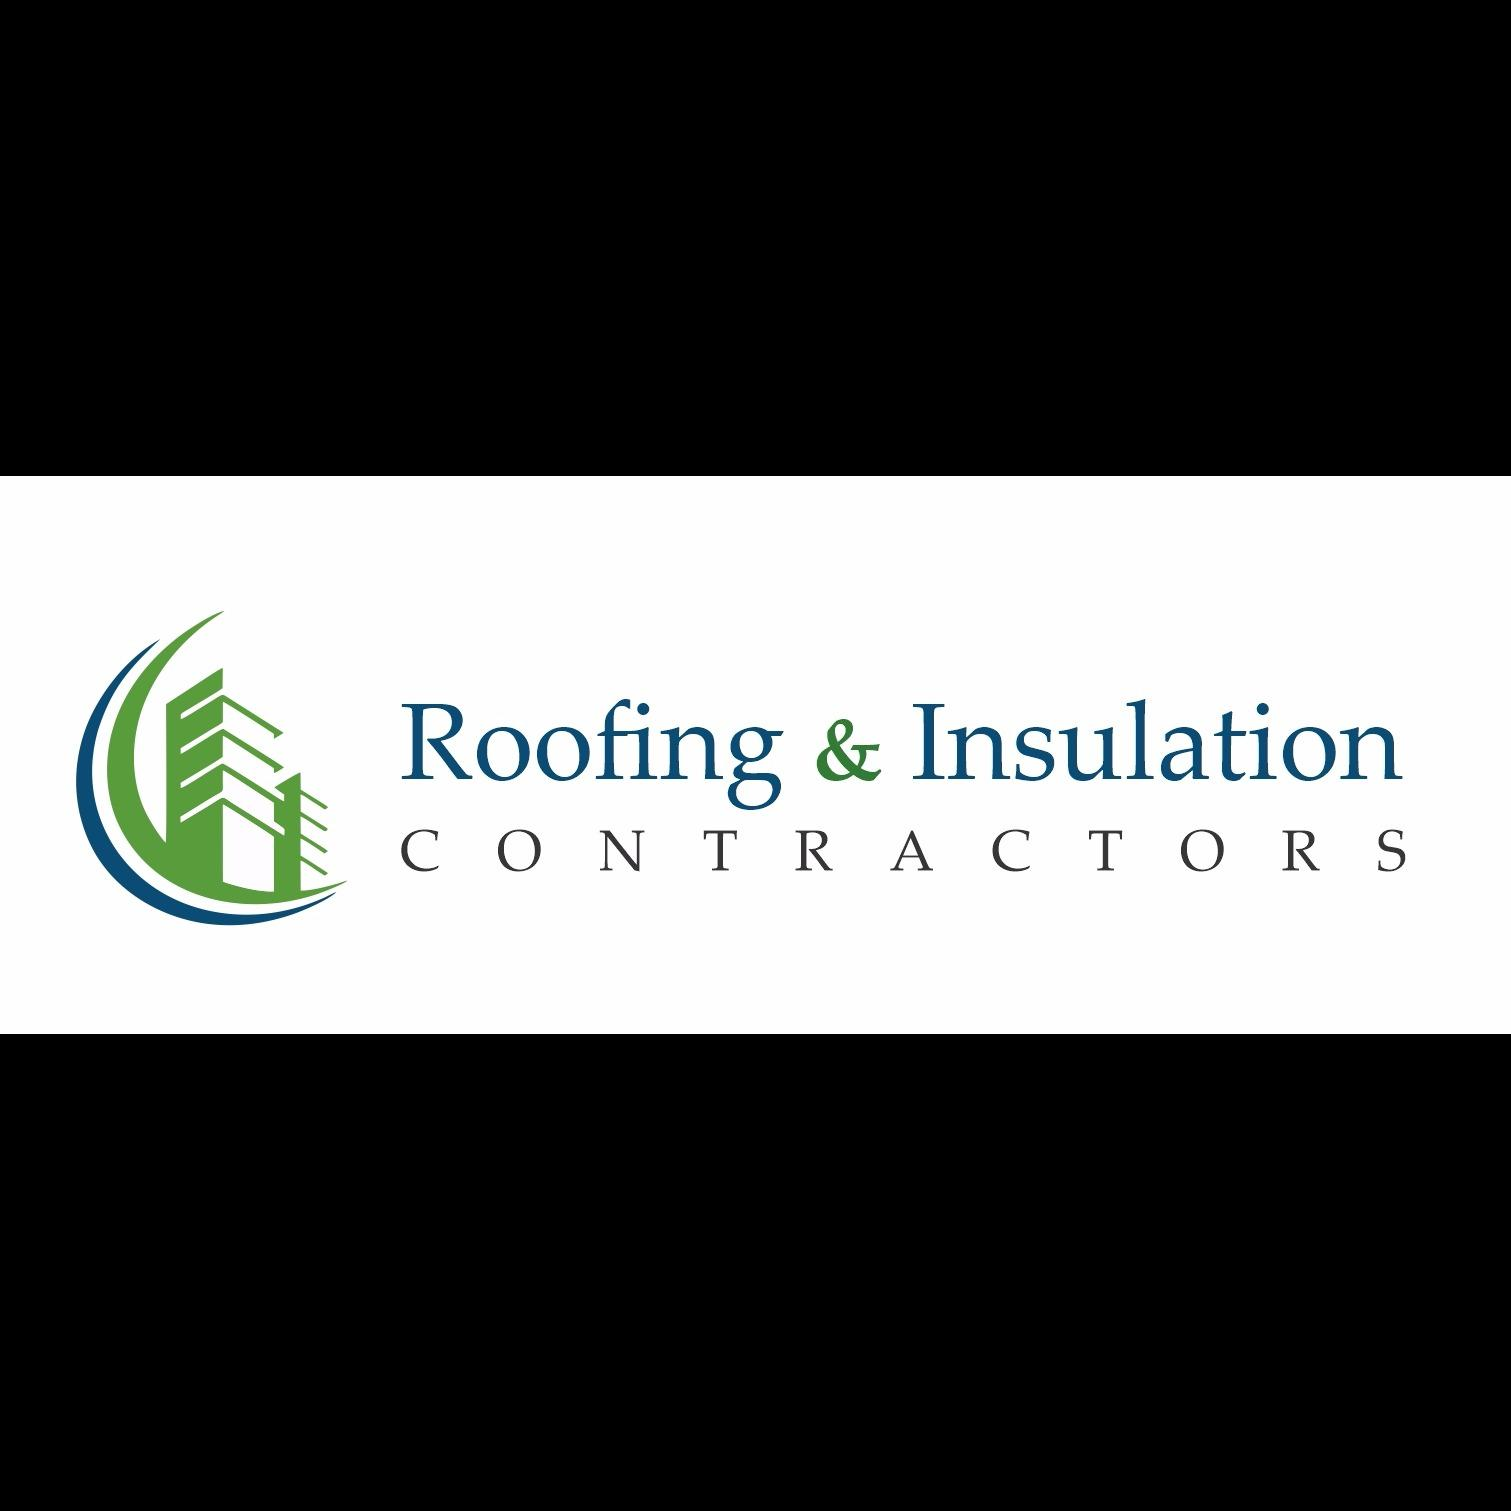 Roofing and Insulation Contractors